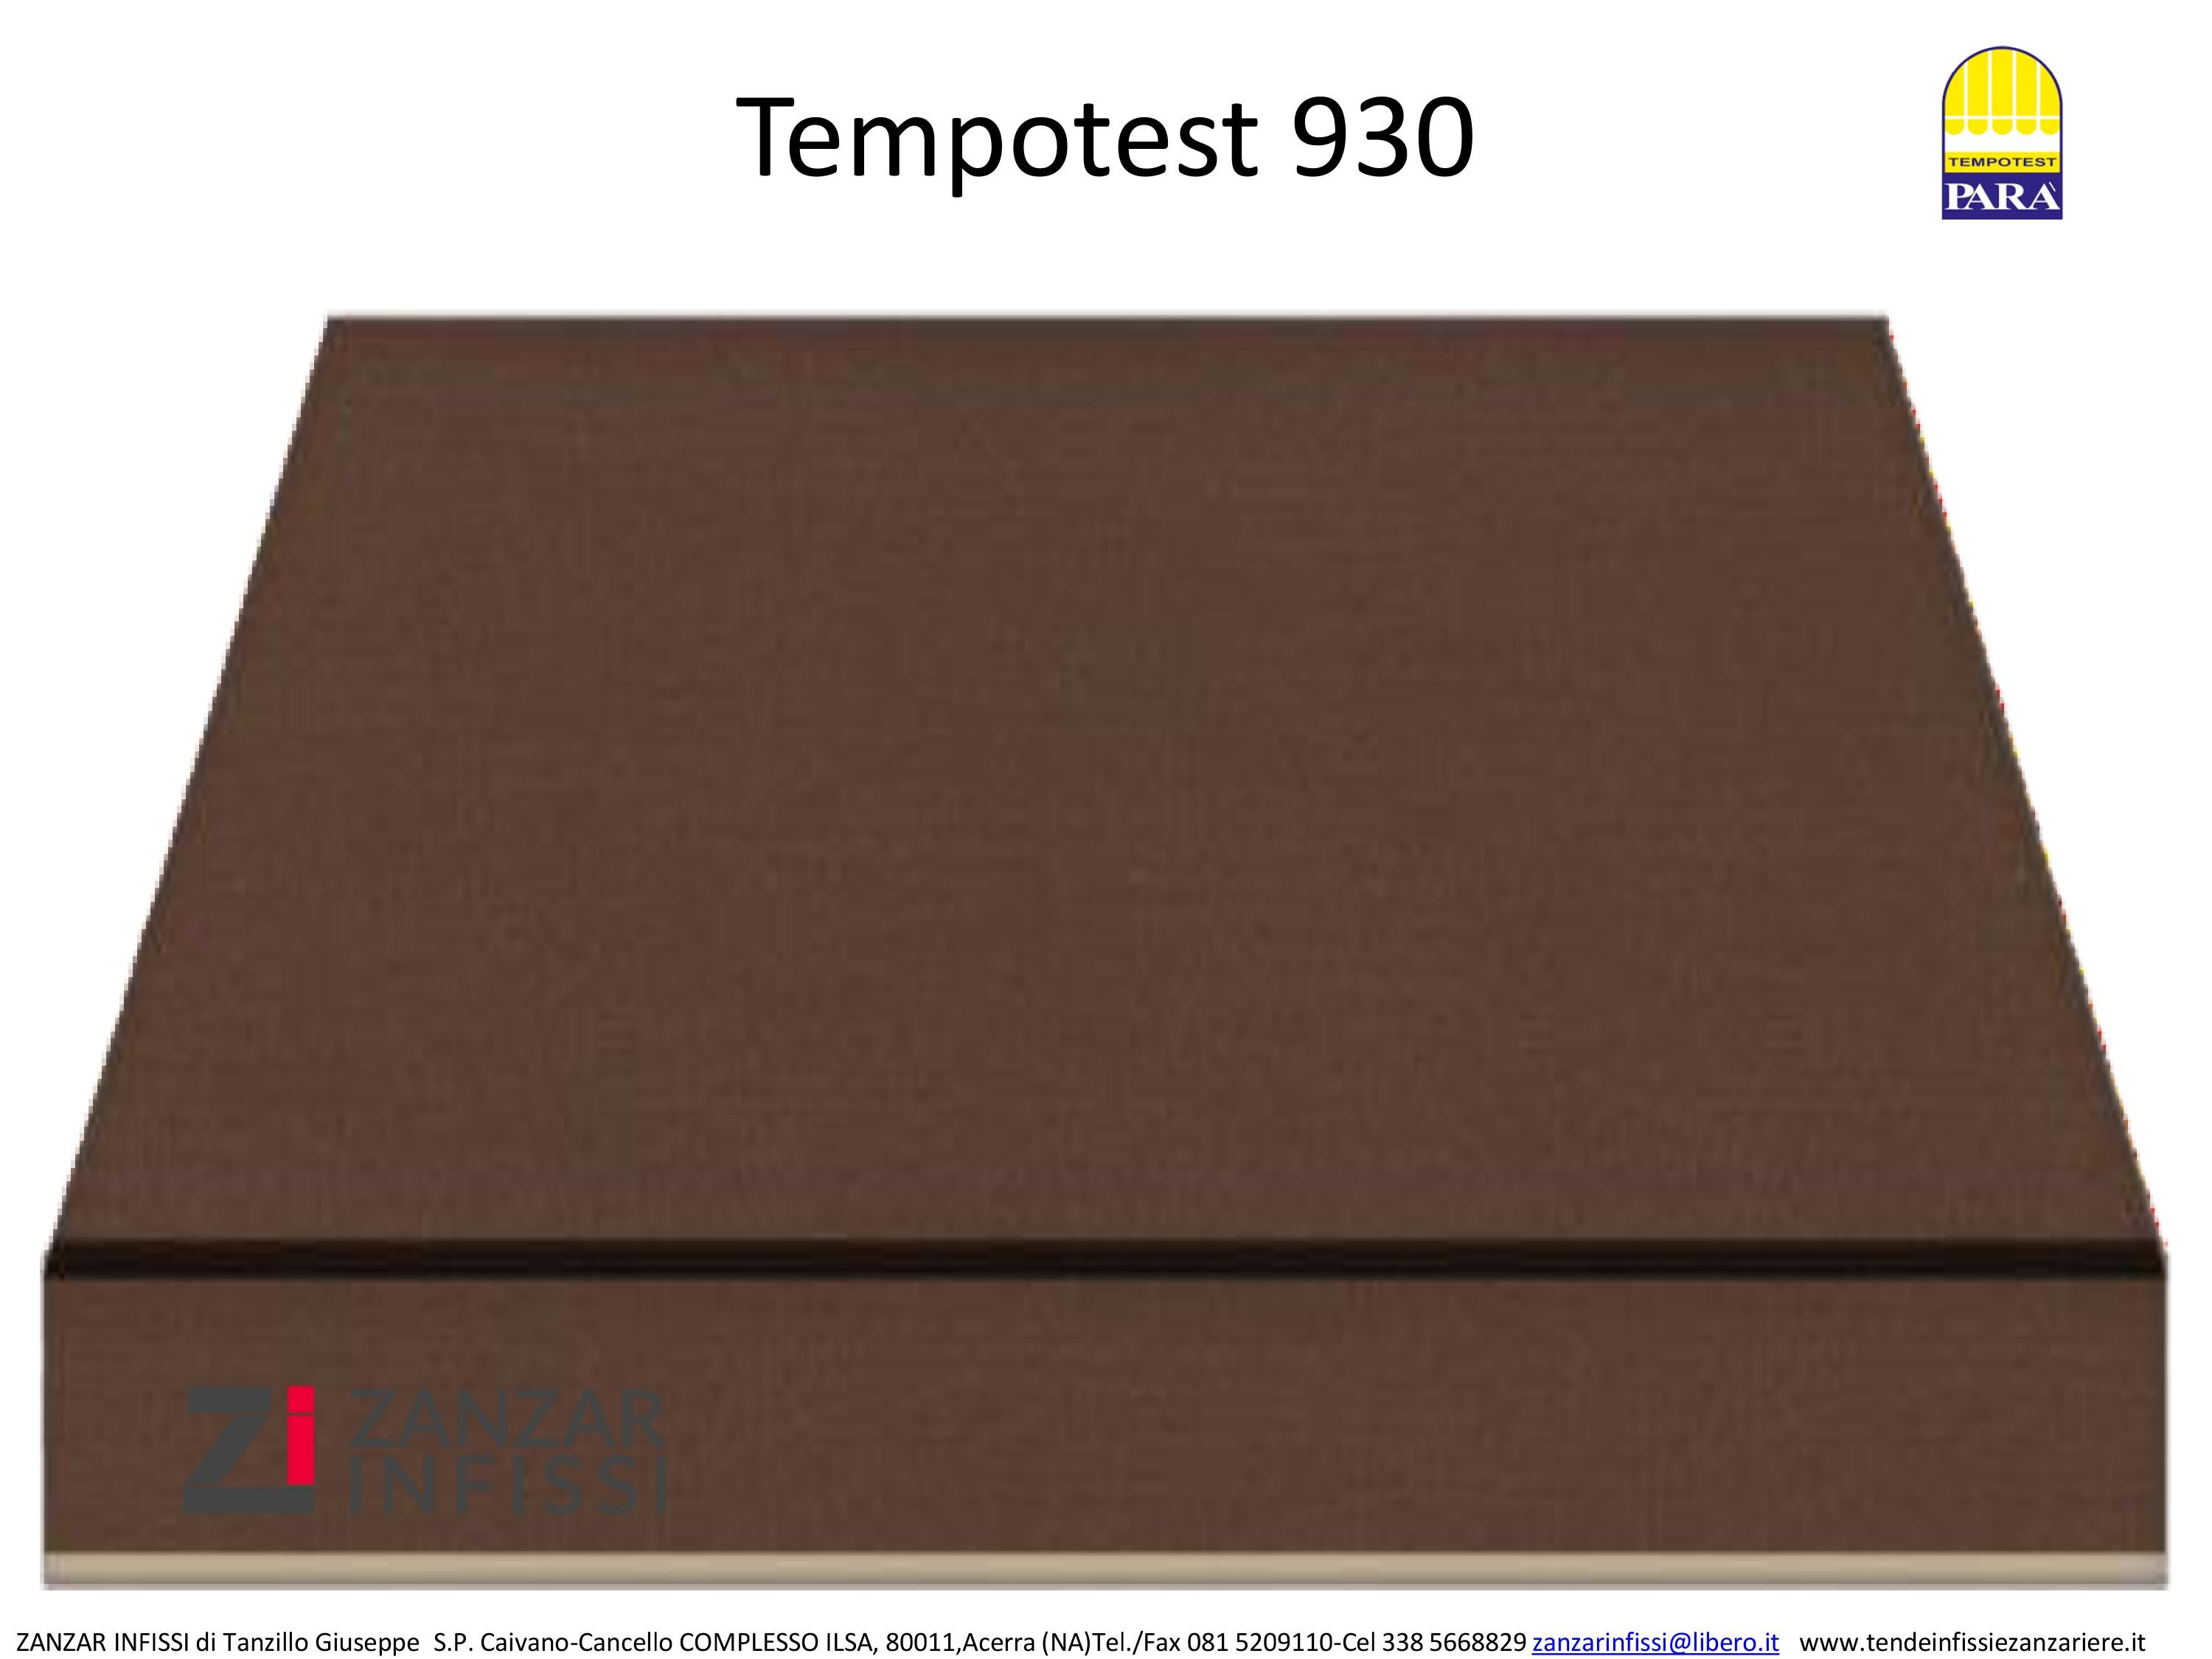 Tempotest 930